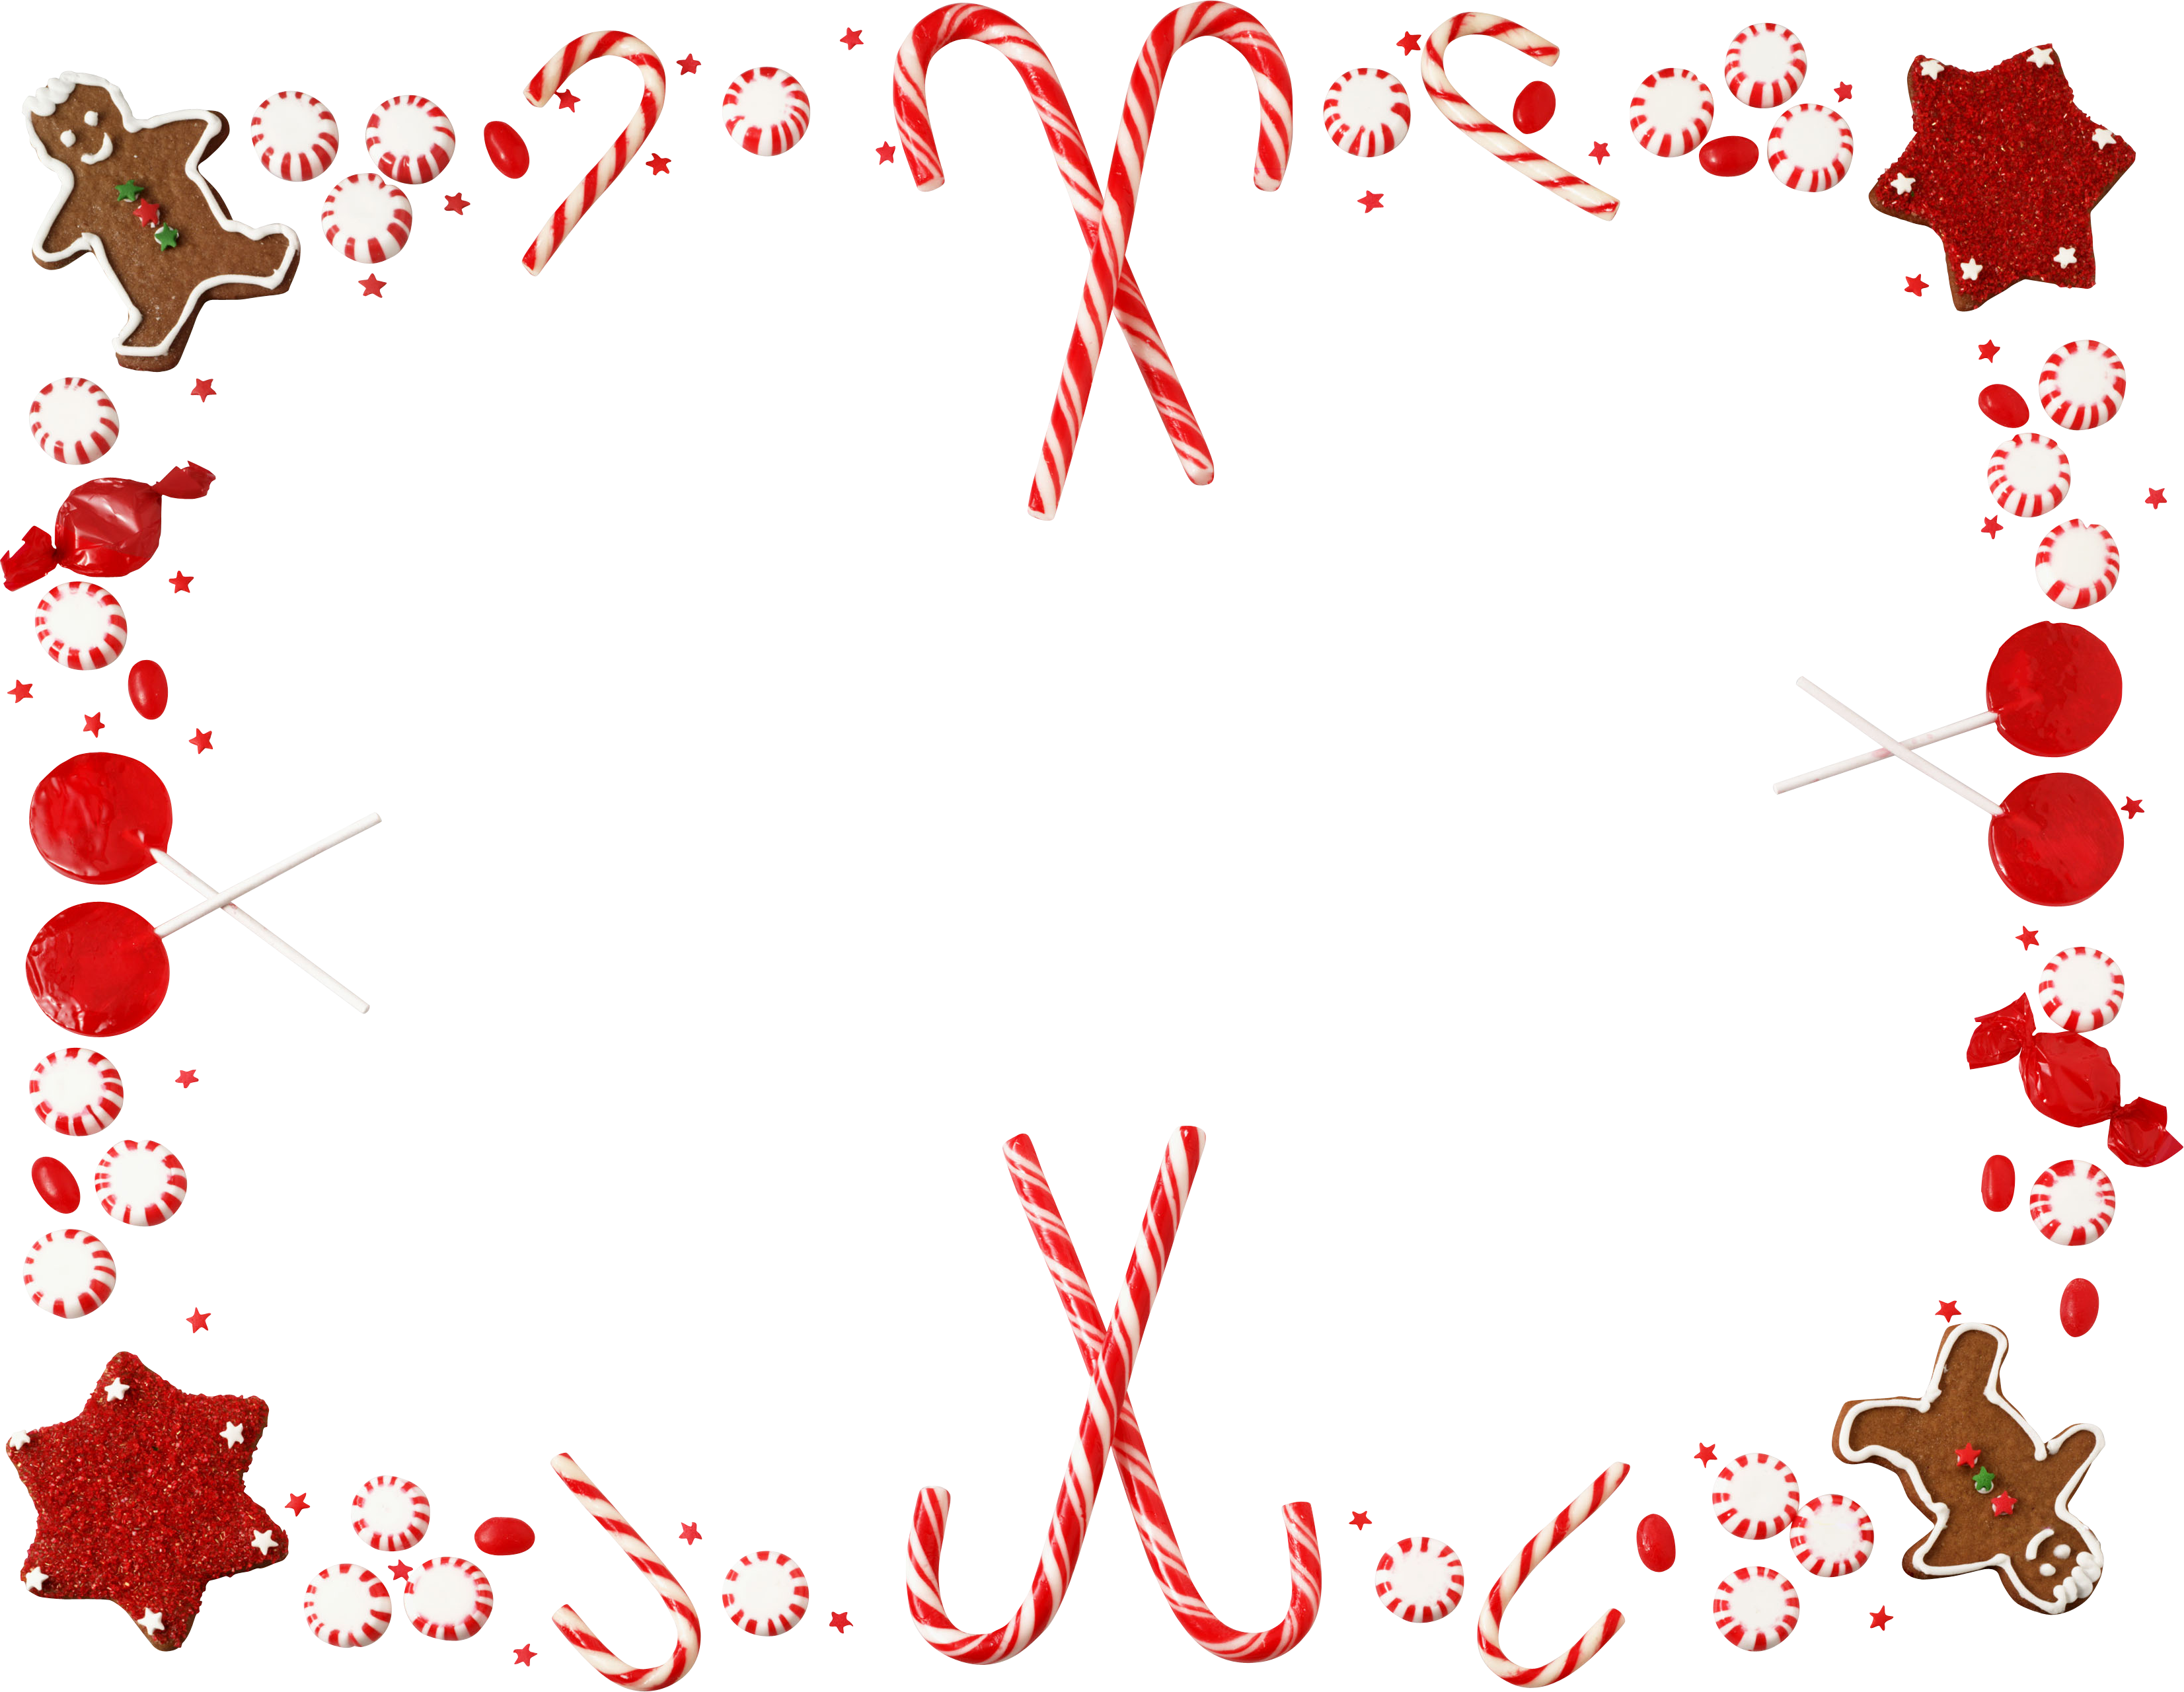 Candy Cane Christmas Border Clipart Free.